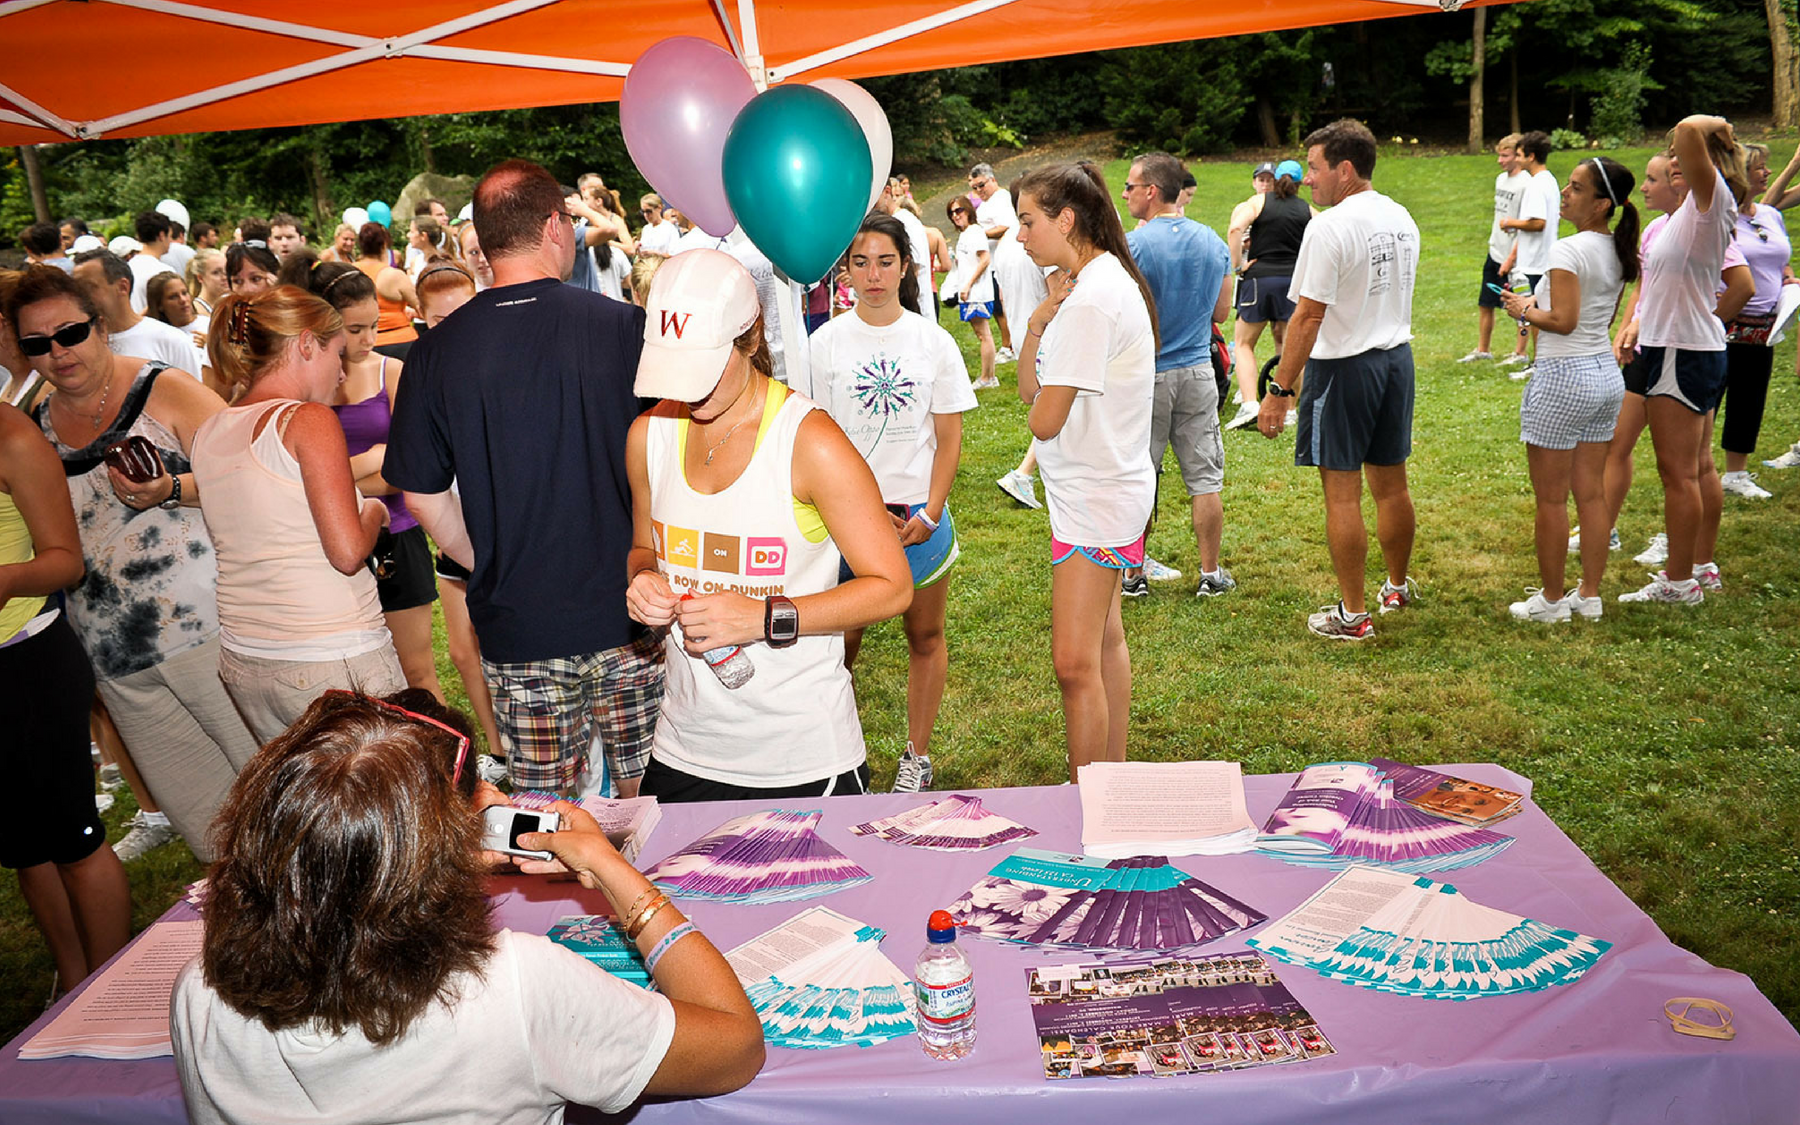 Please Join CSHL Supporters The Katie Oppo Research Fund For 8th Annual Memorial 5k Run Walk On June 10 2018 Beginning 900 AM At